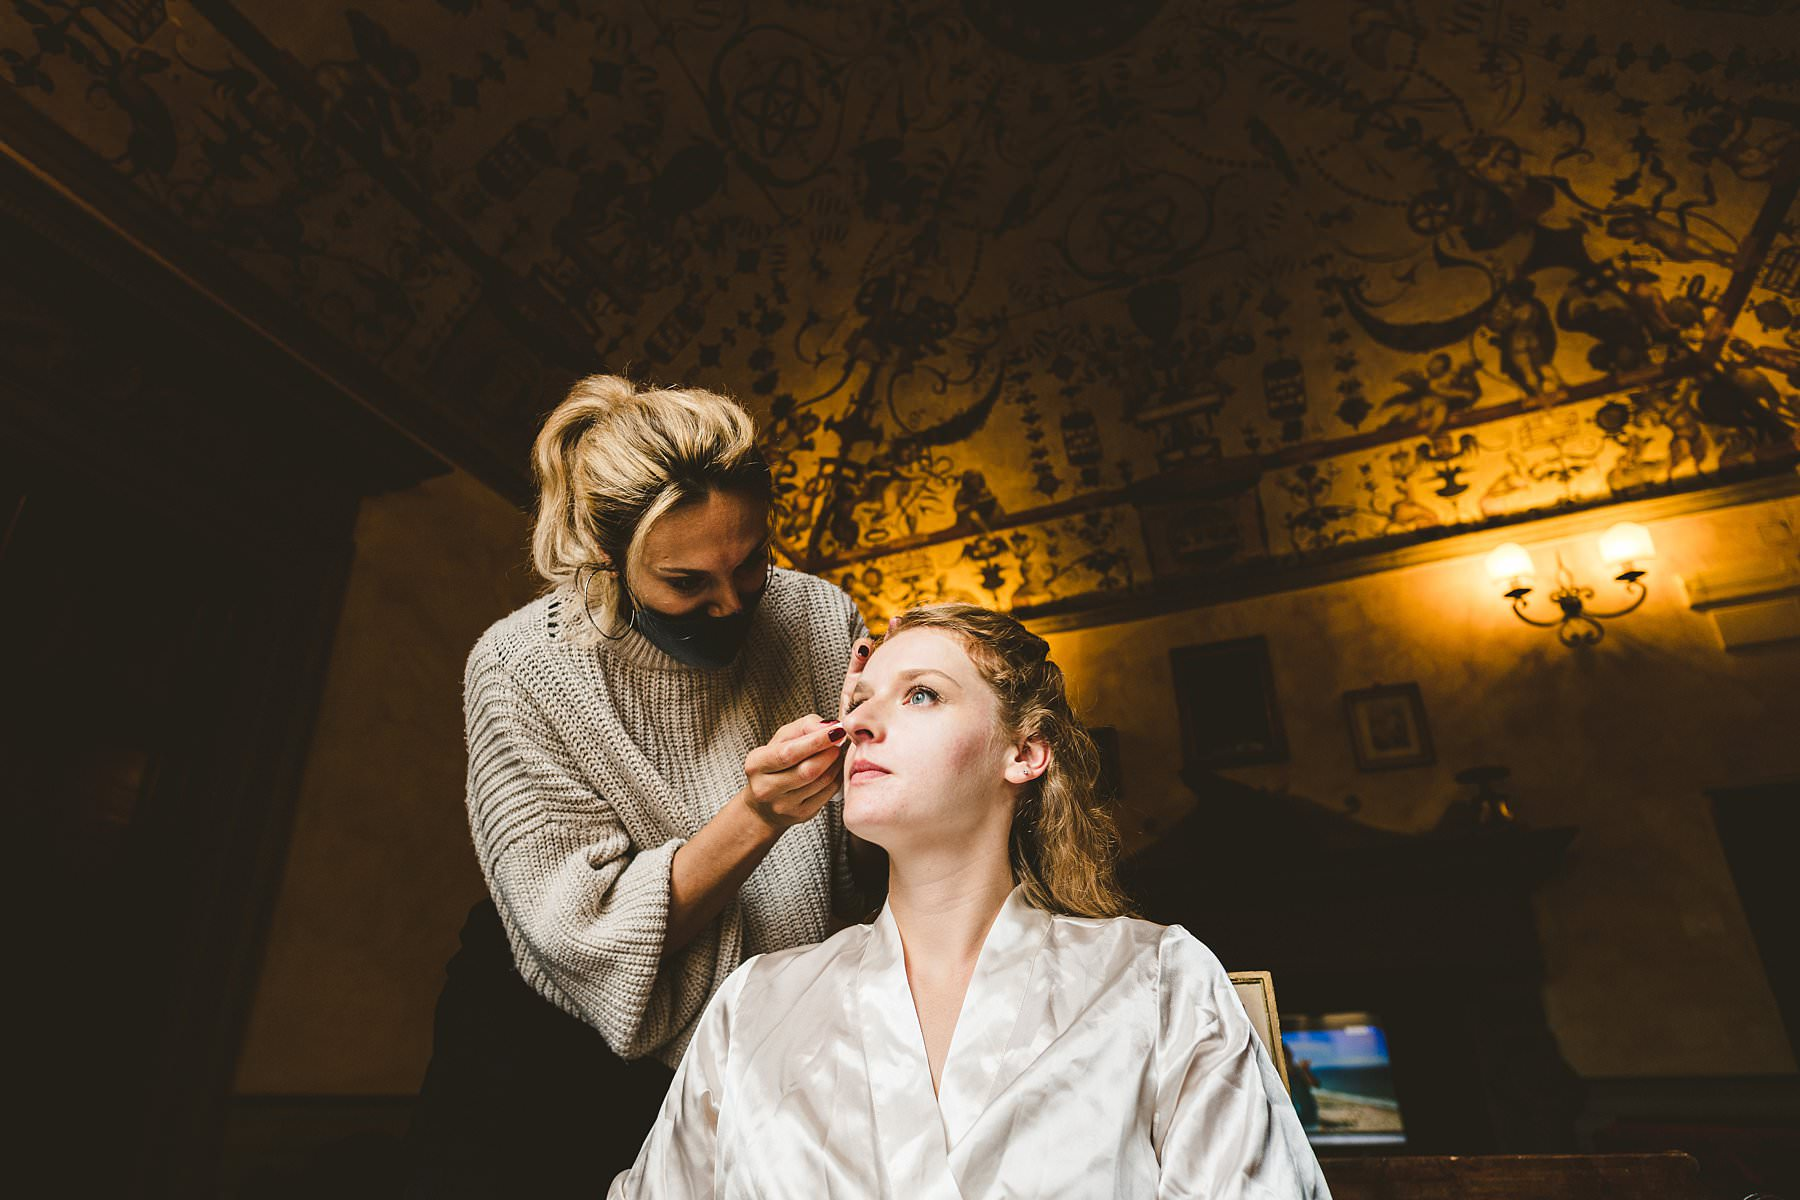 Beautiful bride Poppy get ready at Palazzo Coli Bizzarrini in the heart of Siena, an historic residence whose architecture and incredible frescoes take you back to the Renaissance